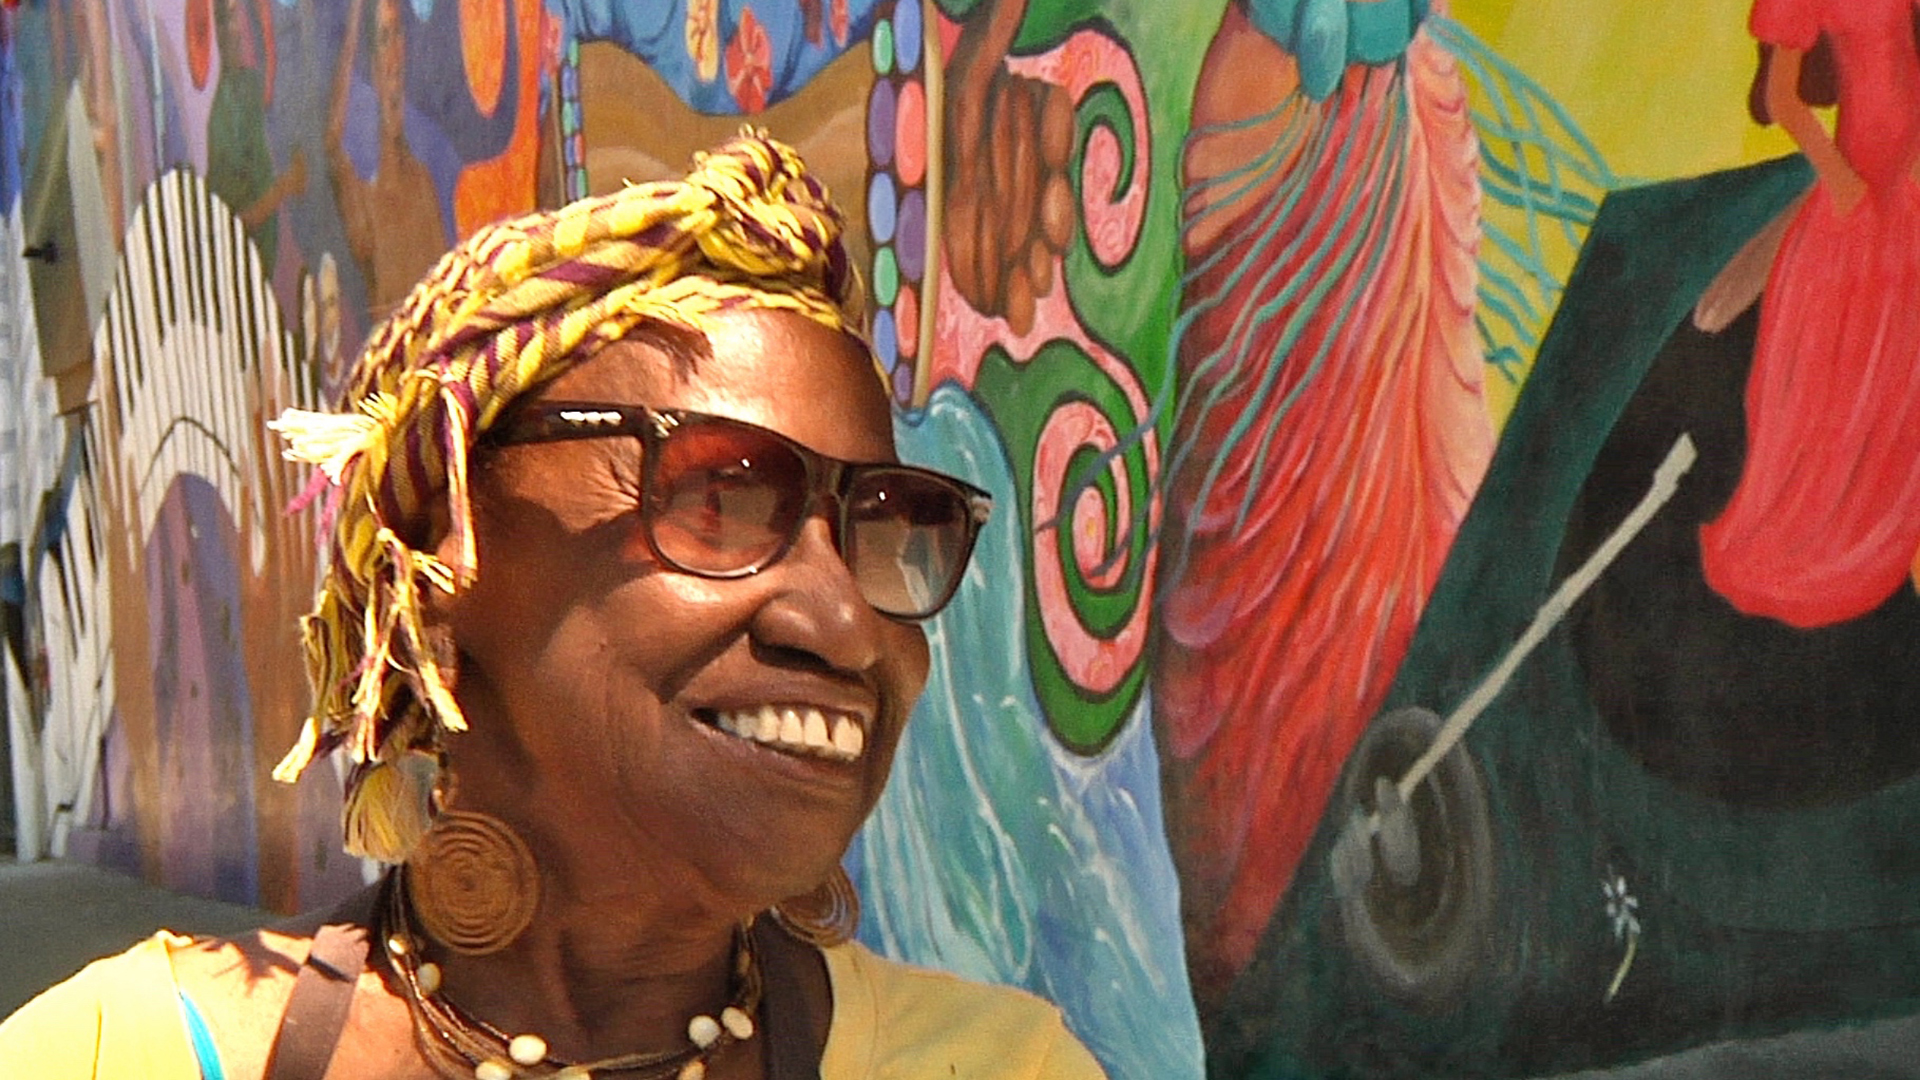 A New Color - The Art of Being Edythe Boone